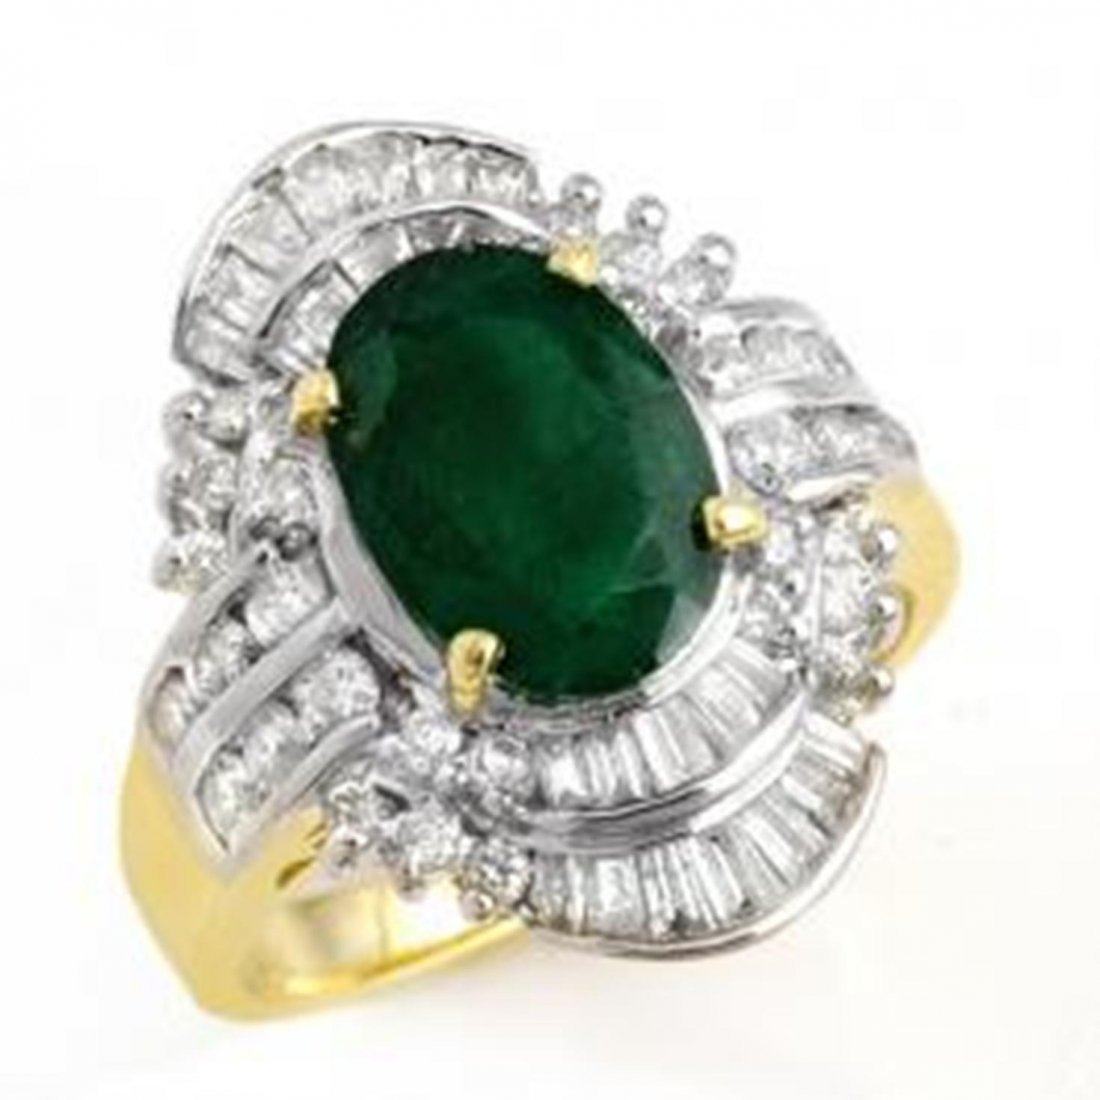 3.45 ctw Emerald & Diamond Ring 14K